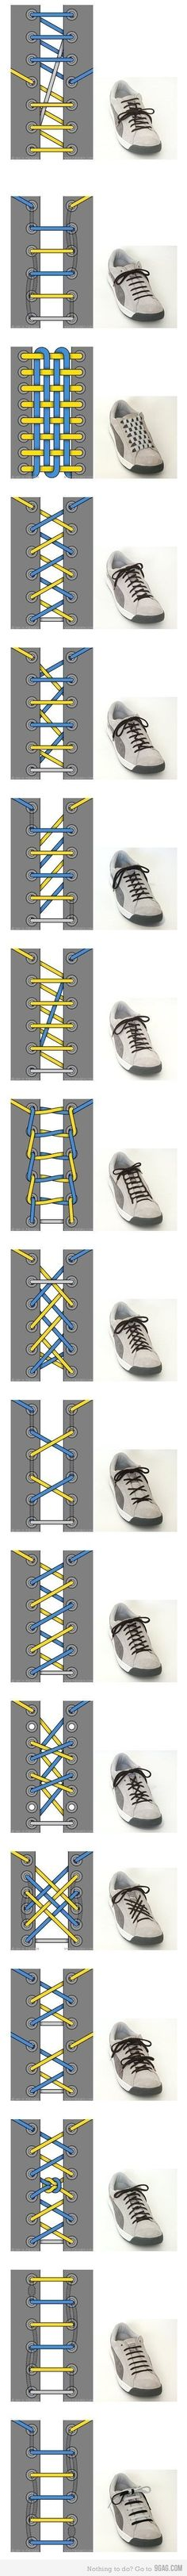 17 Creative ways you can tie your shoes